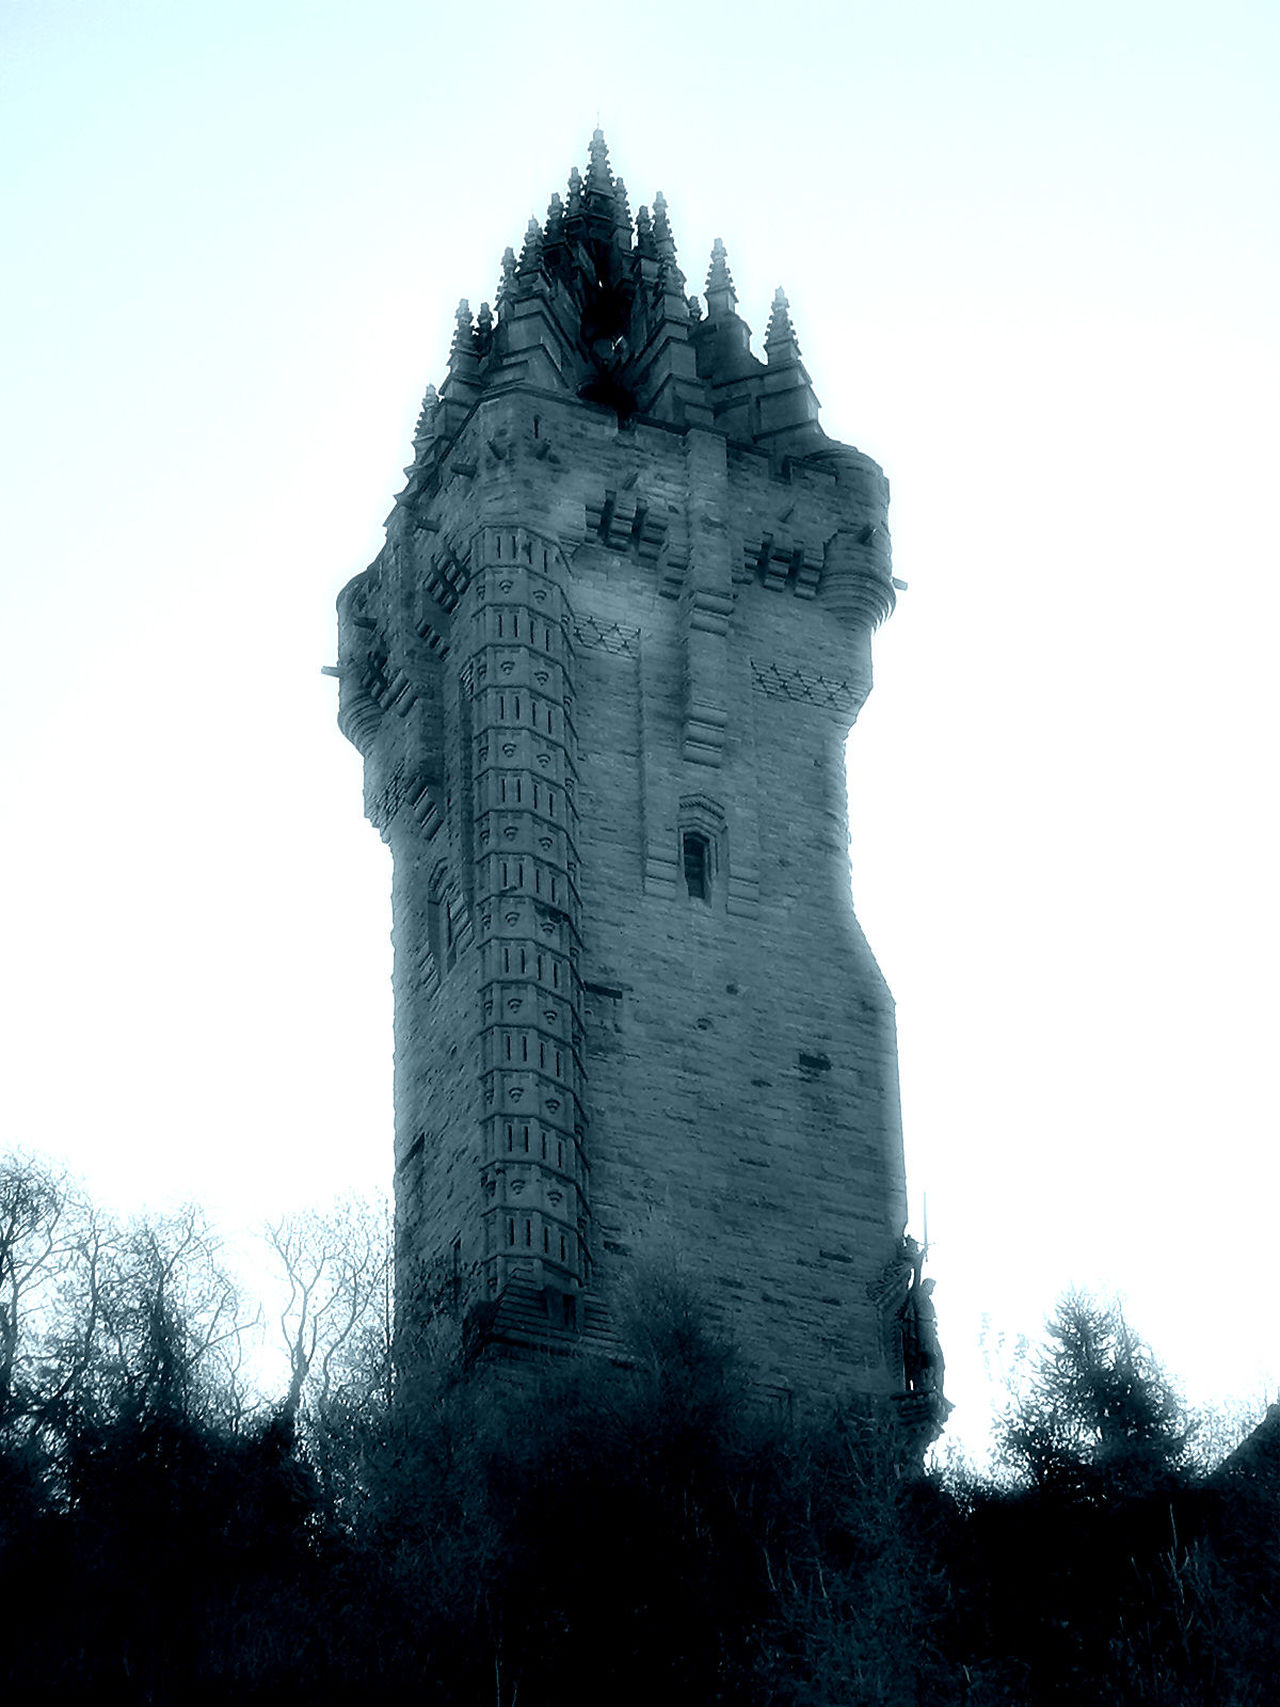 Black And White Photography Braveheart😀 Dreamy Monument Scotland Stirling William Wallace